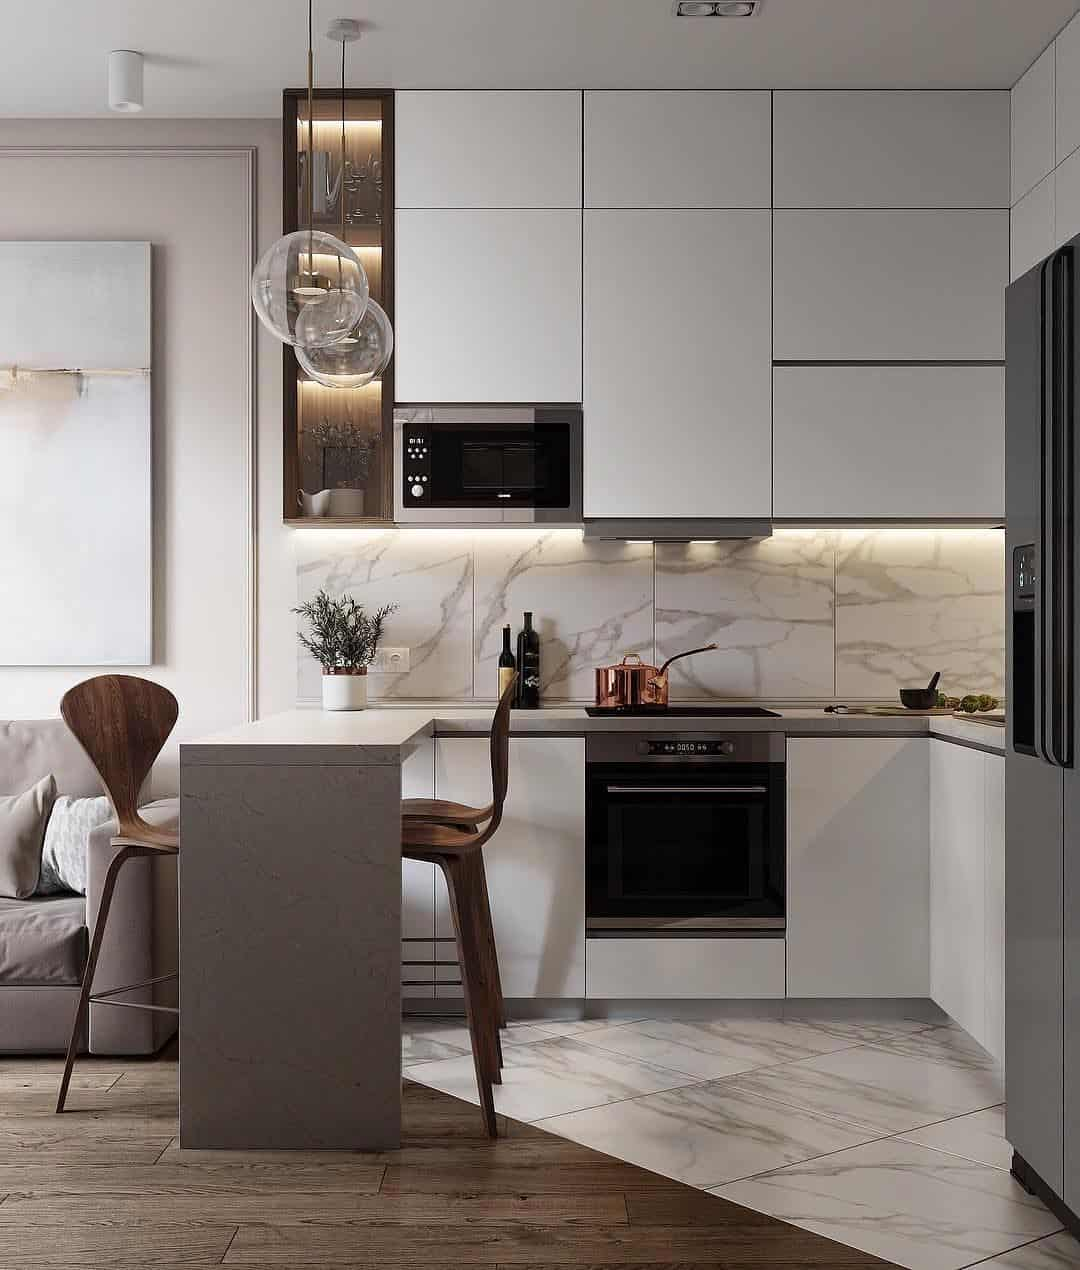 Kitchen Design 2021 l Top 15 Useful Tips for Your Interior